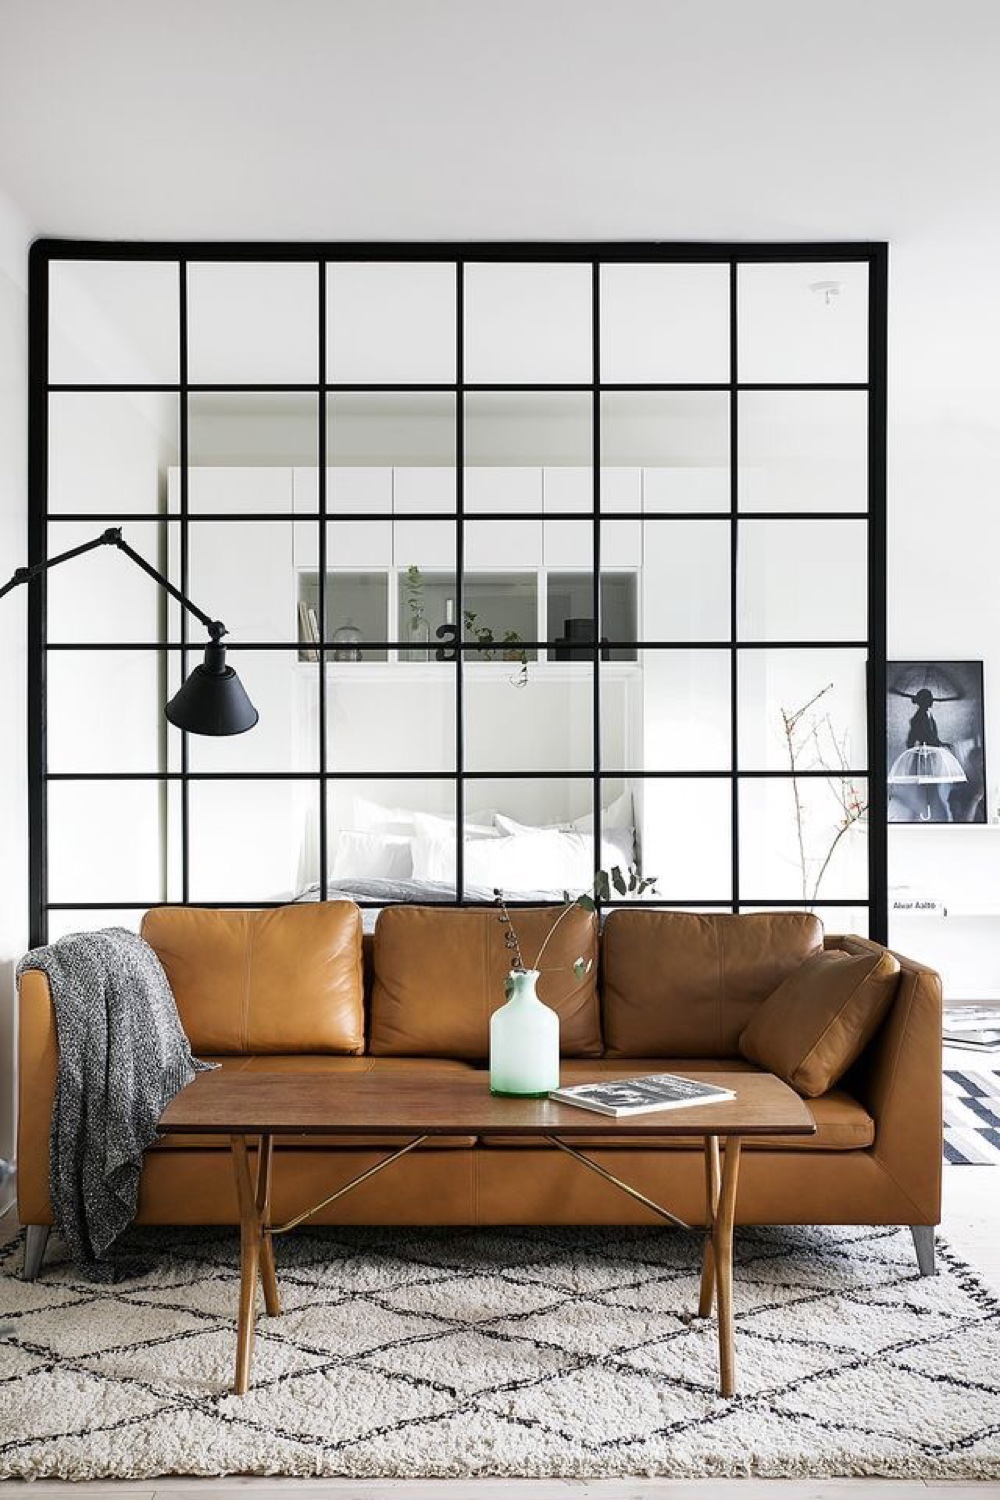 Crittall Steel Window Frames Crittal Cripple Steel Window Design London  House